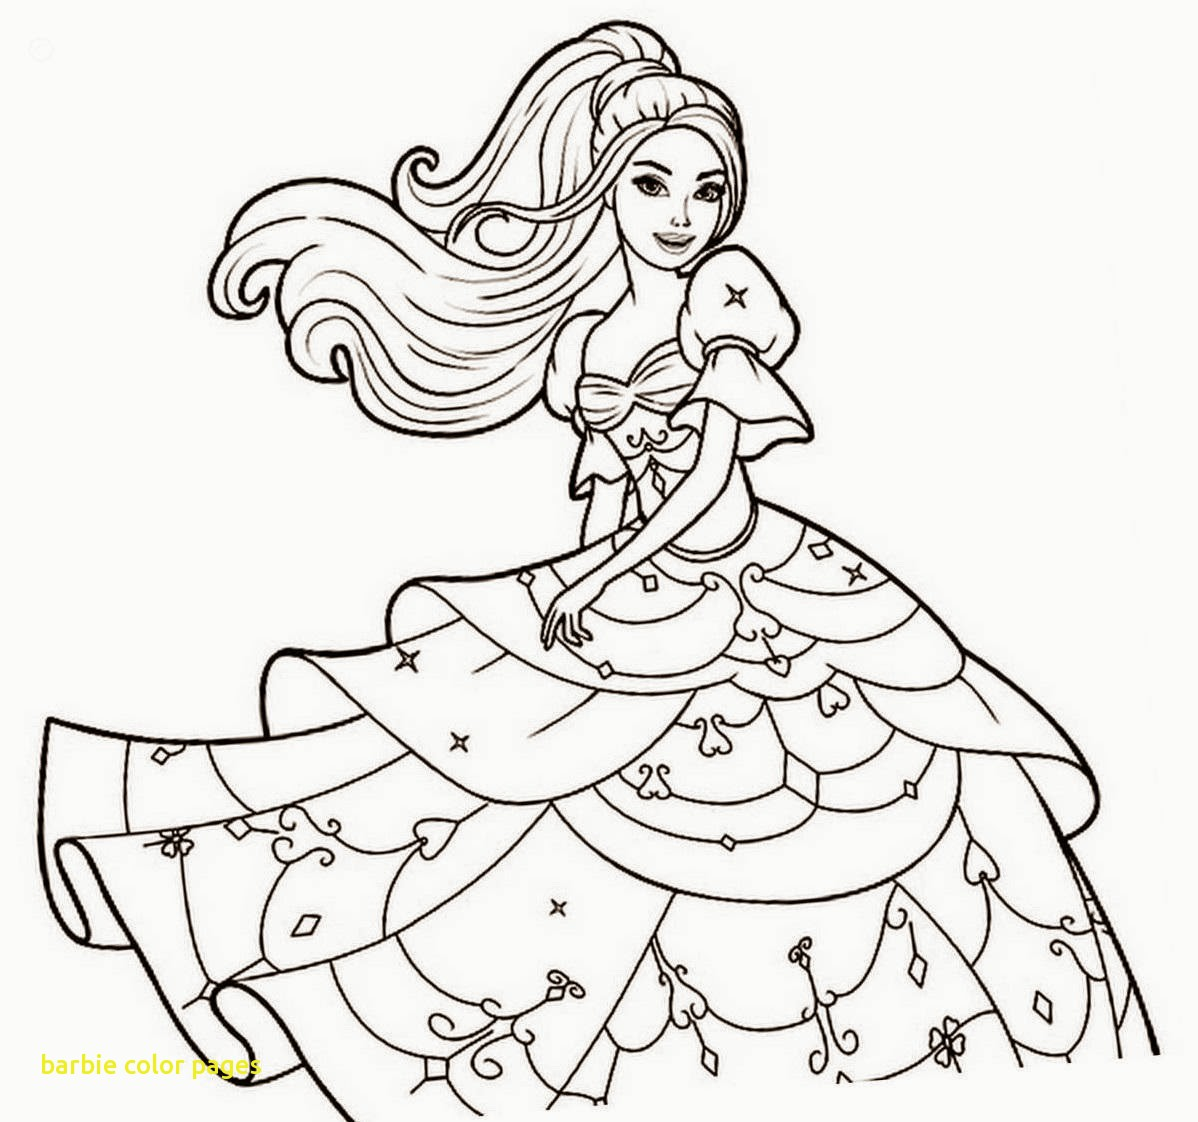 1198x1122 Barbie Color Pages With Drawn Coloring Page Pencil And In New